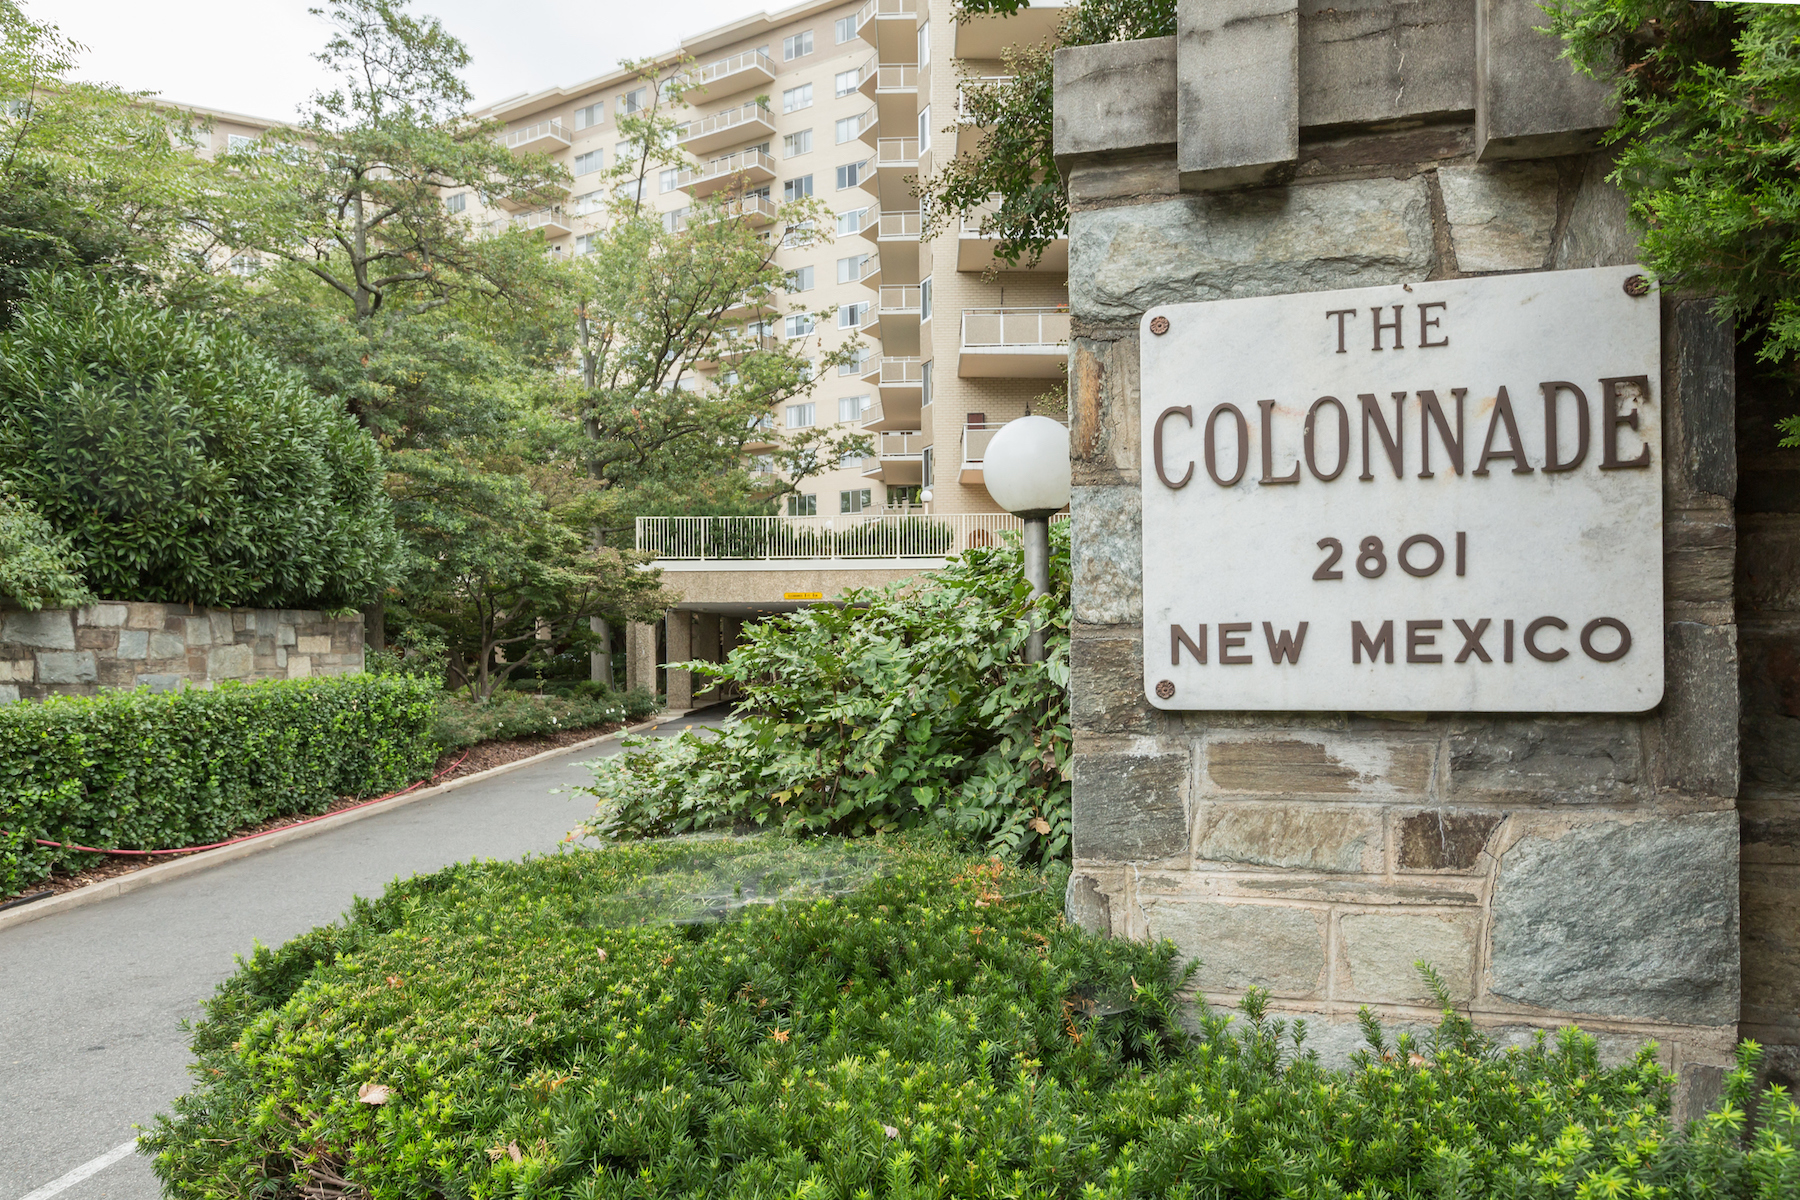 Single Family Home for Sale at The Colonnade 2801 New Mexico Ave 1110-1111 Washington, District Of Columbia, 20007 United States